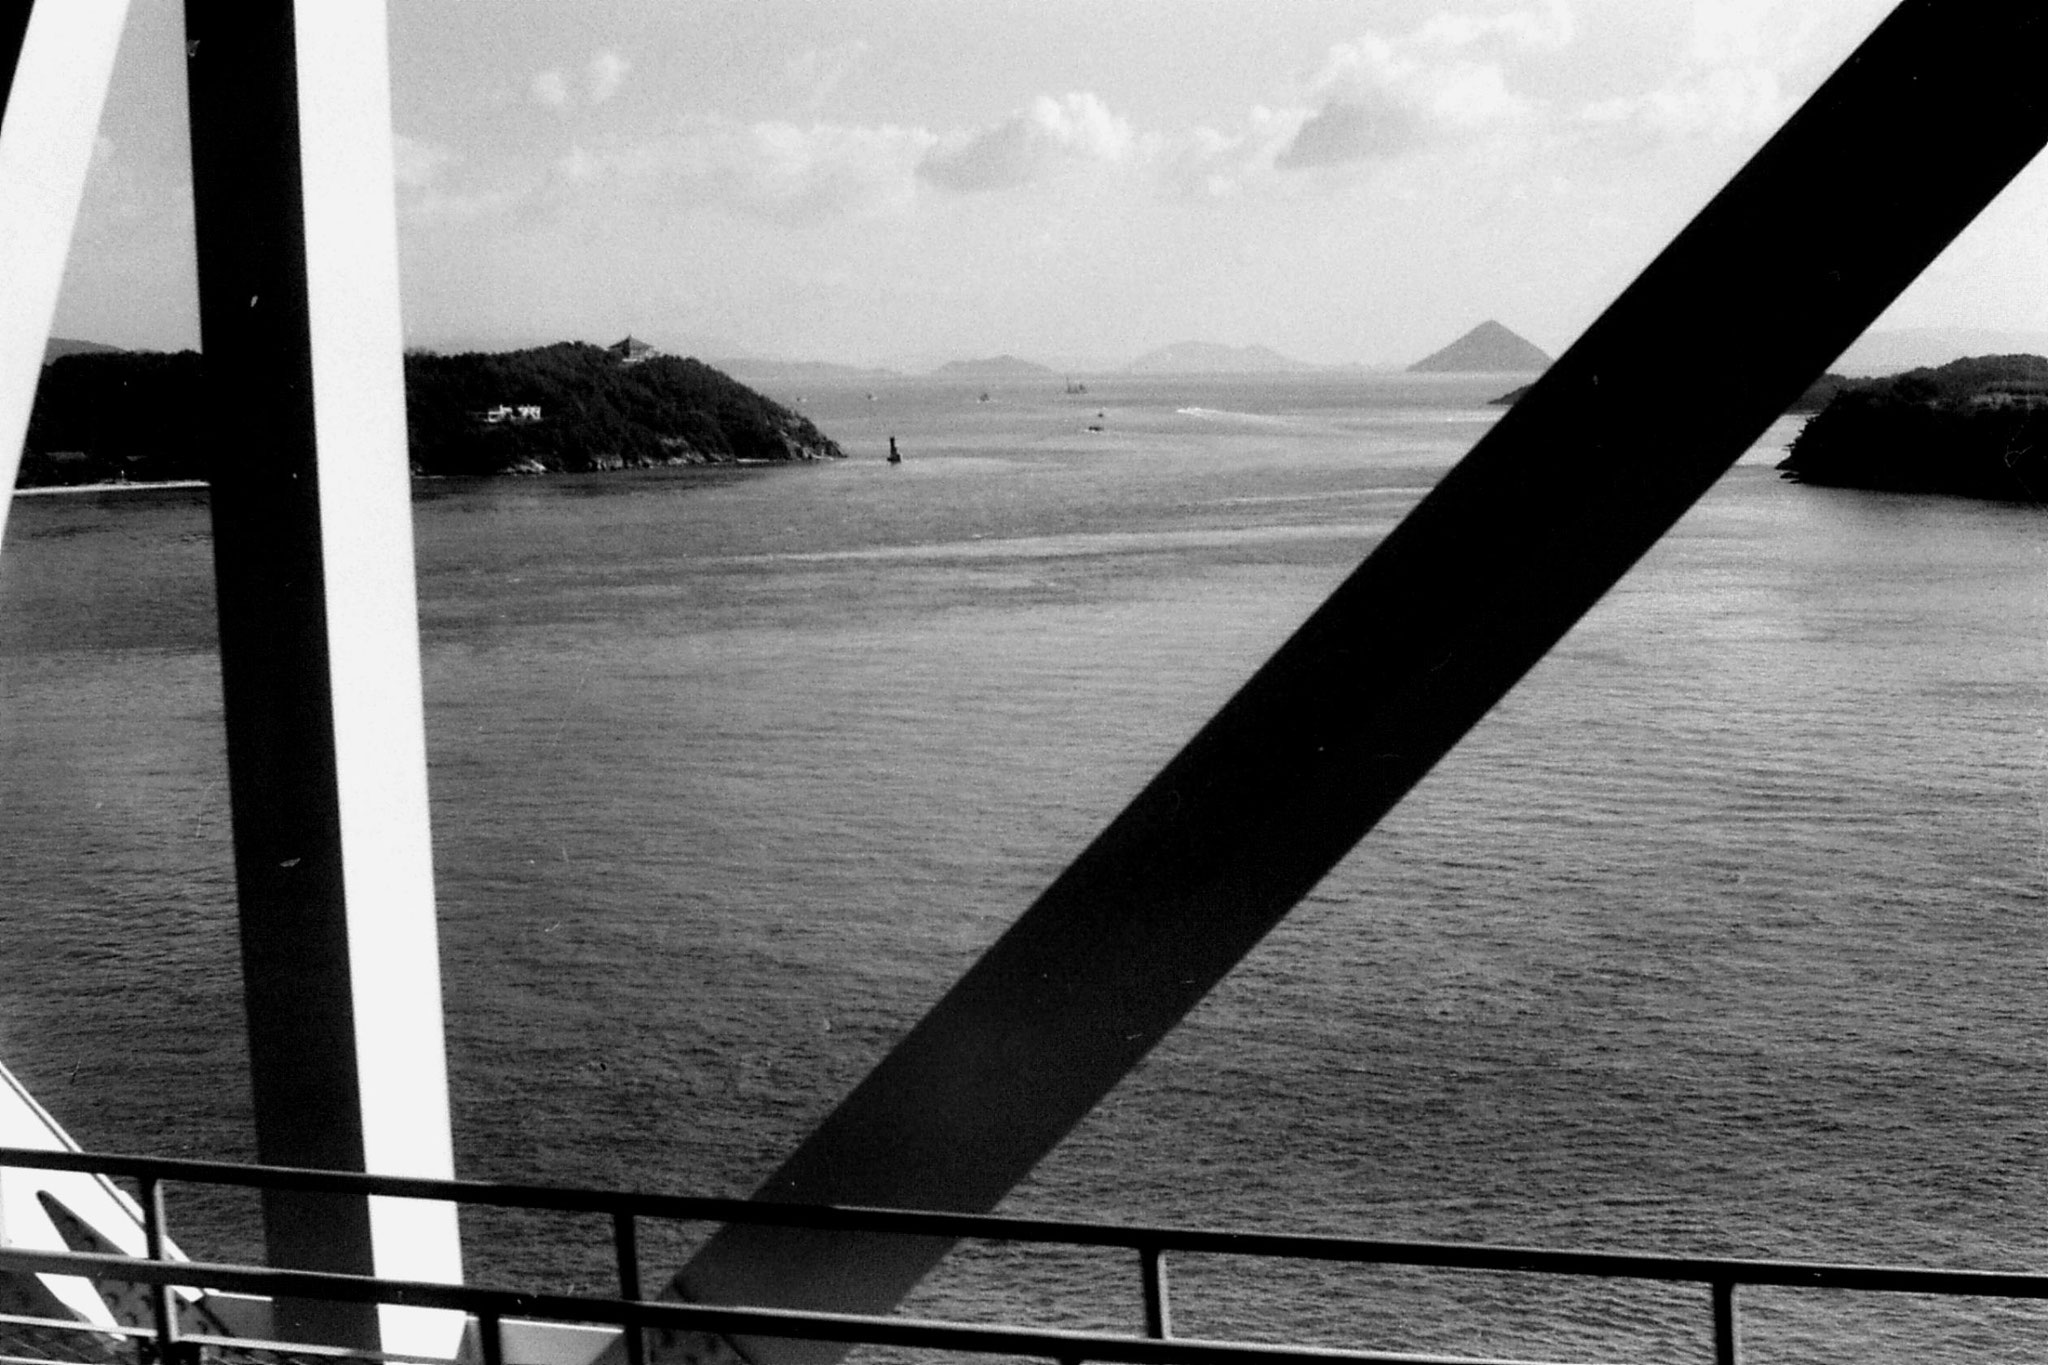 24/1/1989: 10: bridge over Seto Sea